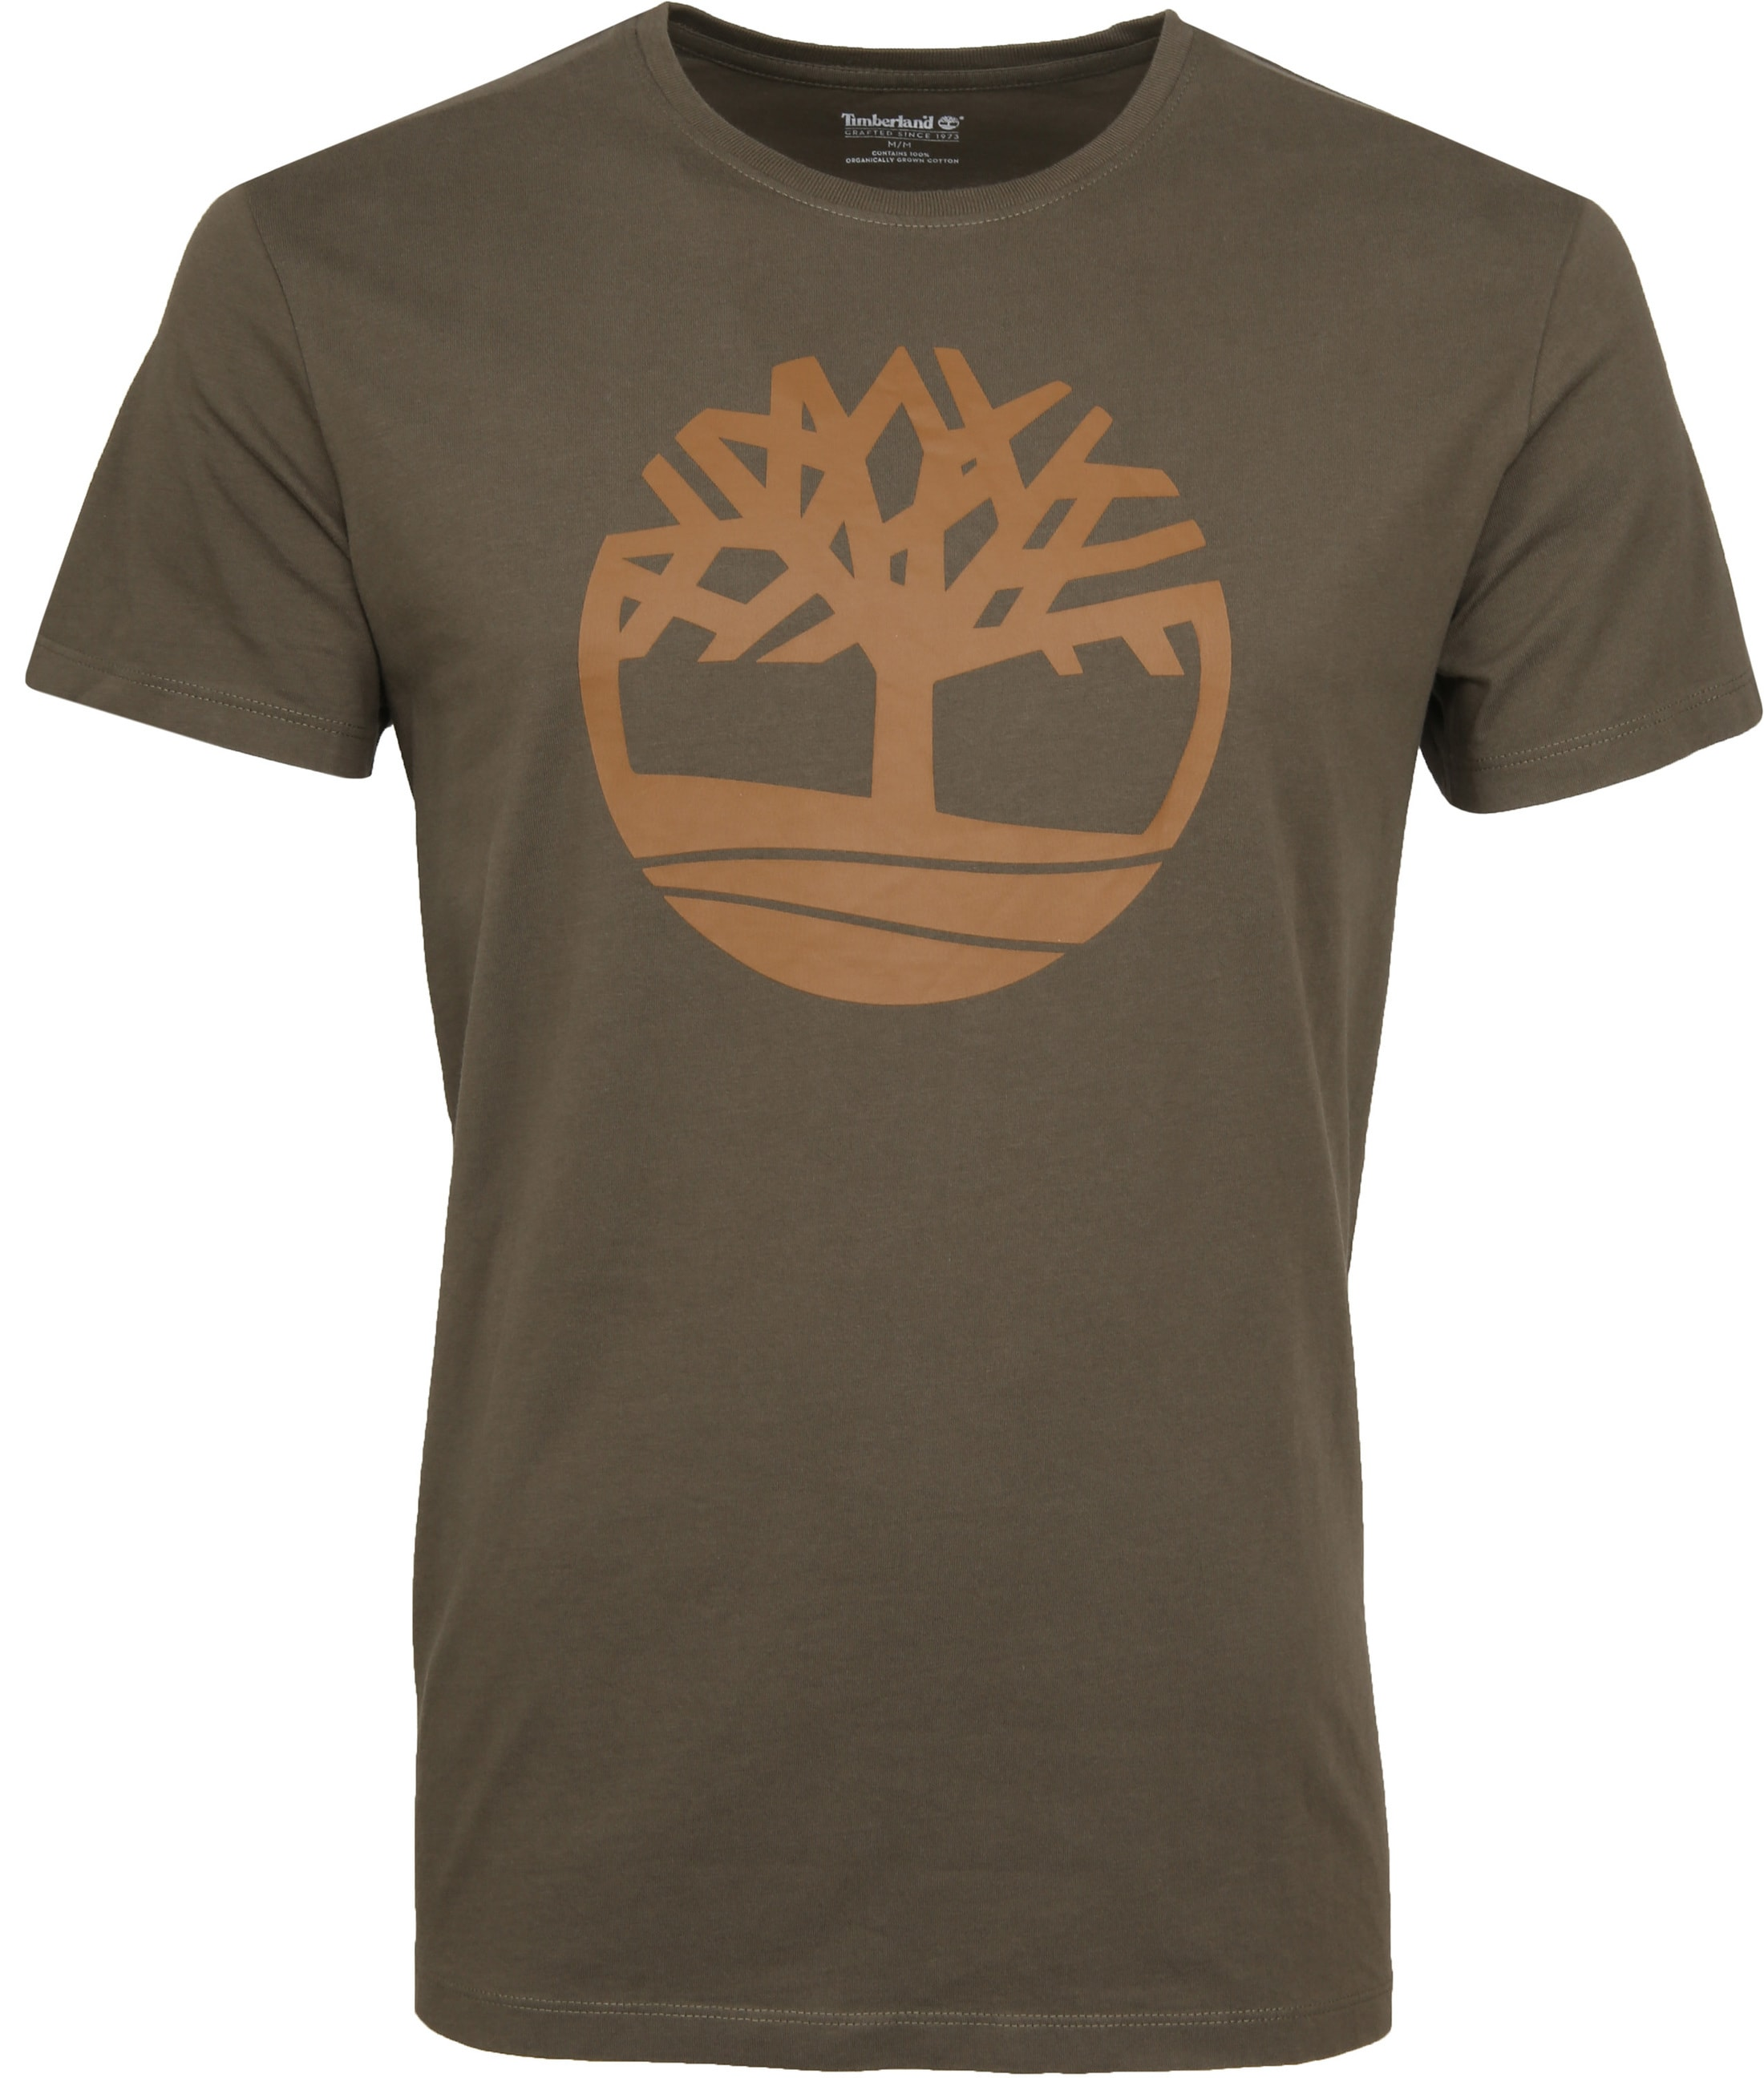 0abfe81d5a Timberland T-shirt Armee TB0A1L6OL481 online kaufen | Suitable